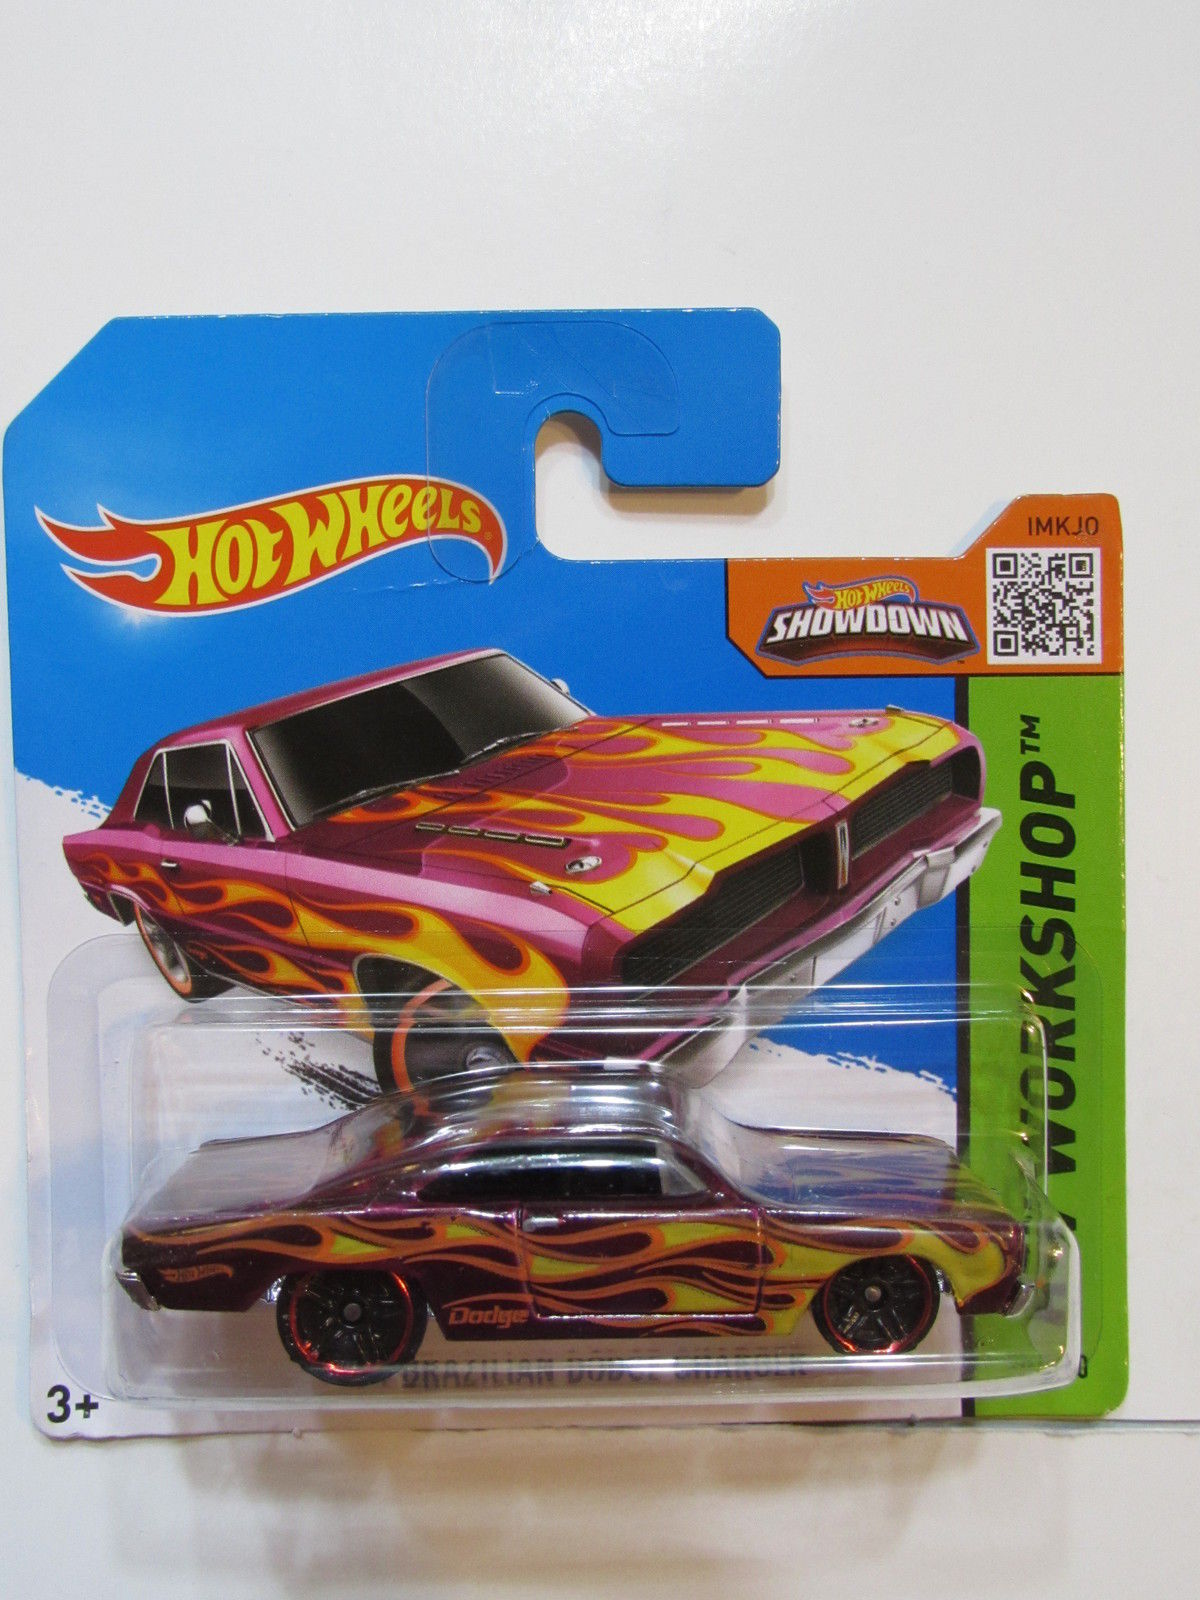 HOT WHEELS 2015 HW WORKSHOP 74 BRAZILIAN DODGE CHARGER SHORT CARD